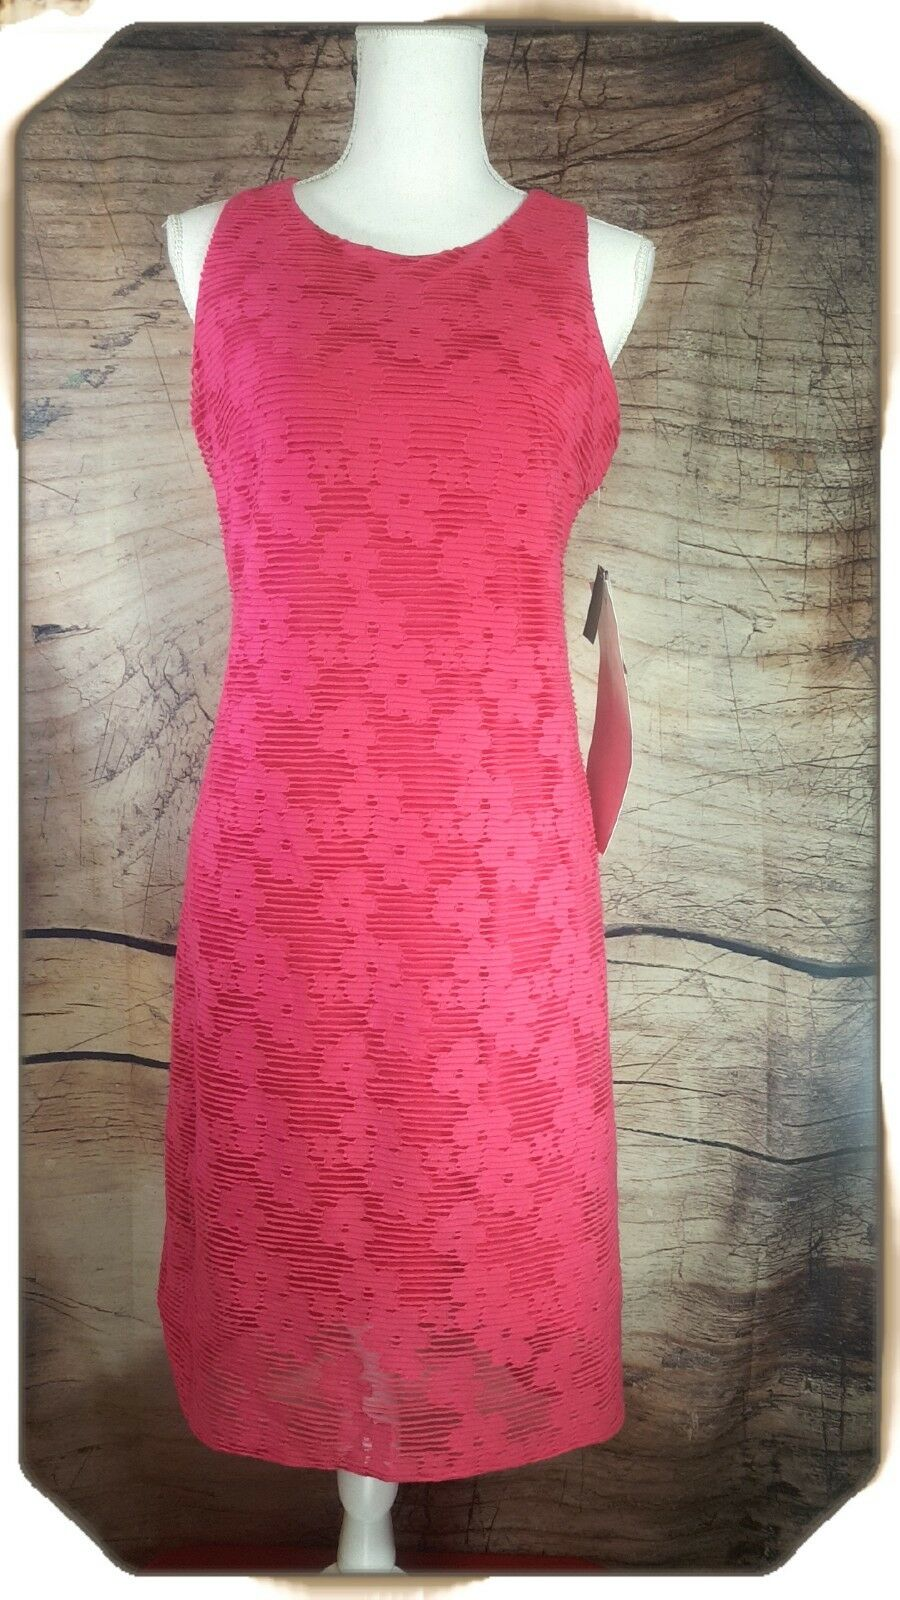 NWT Nine West Women's Dress Pink High Low Shift Size 4 A05